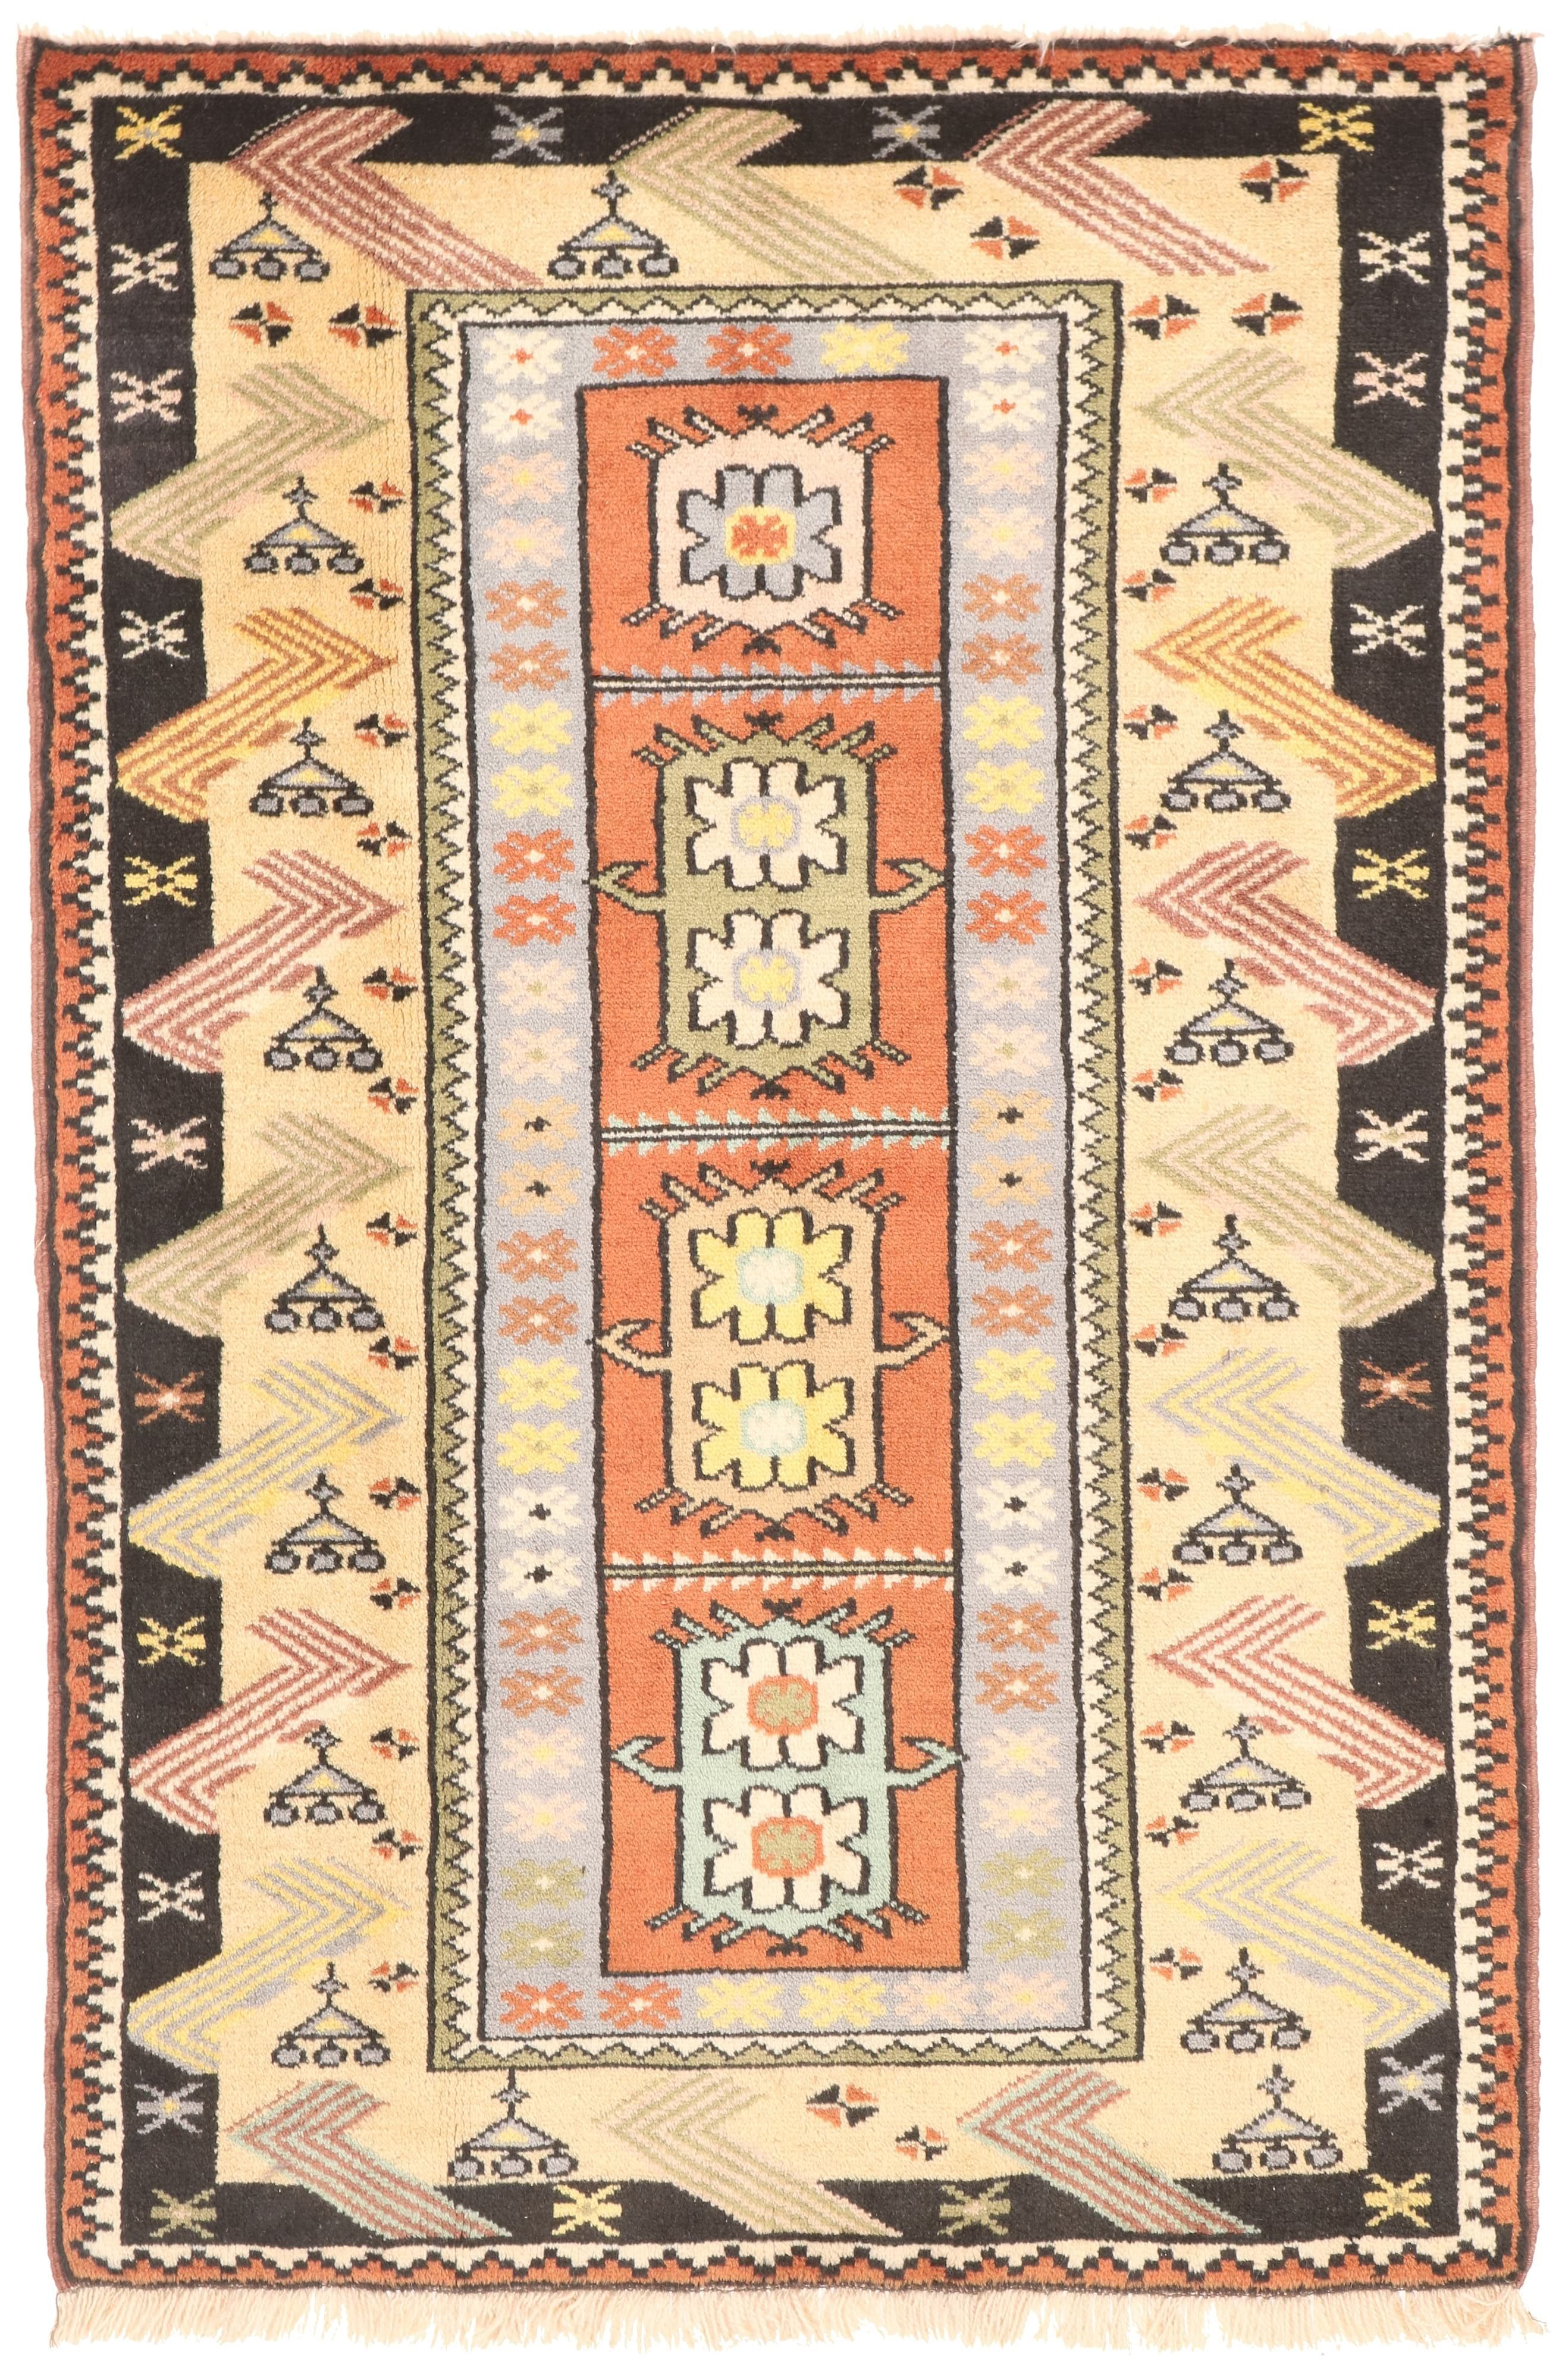 Persian Balouch Rug Yellow / Orange / Black Border - front view